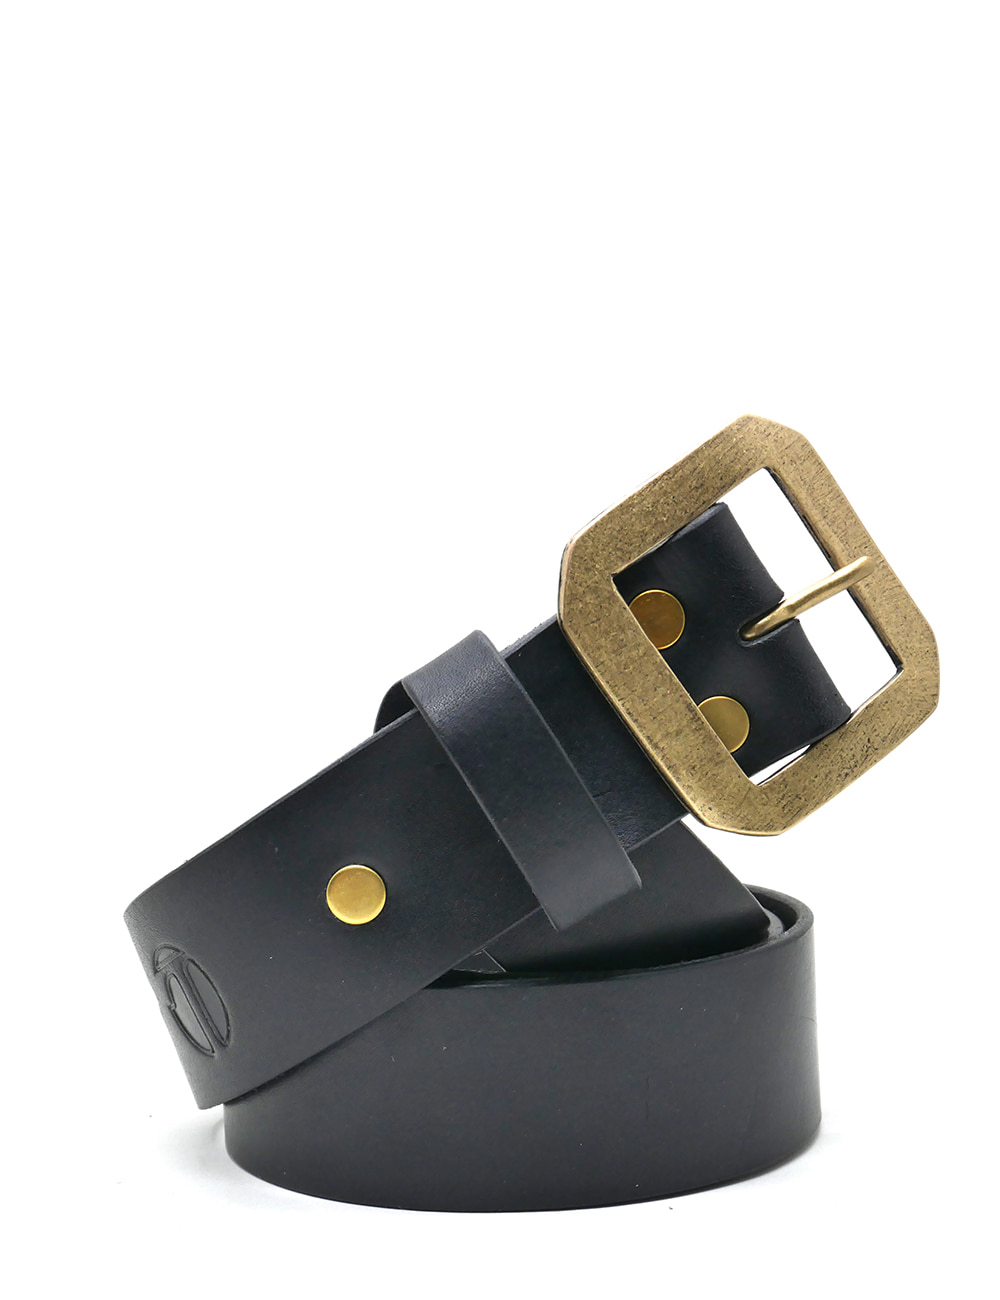 [LEATHER SMITH]  compulsory single belt(black&gold)